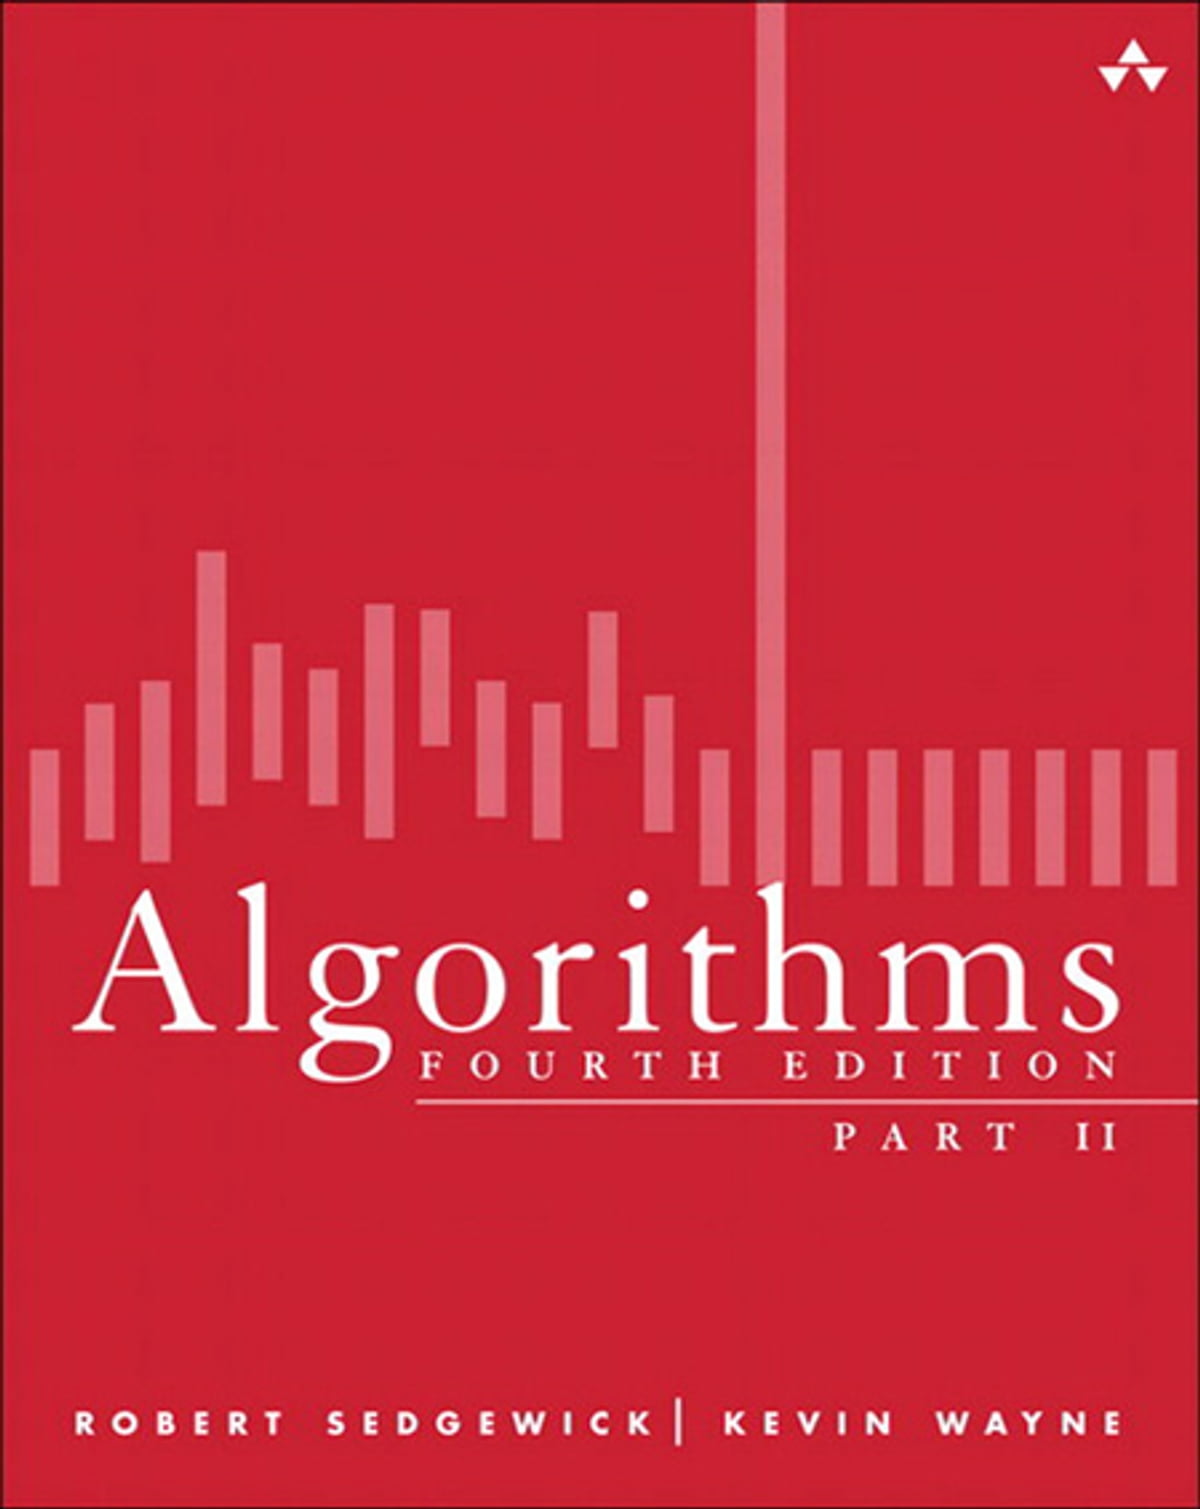 Image result for Algorithms Robert Sedgewick